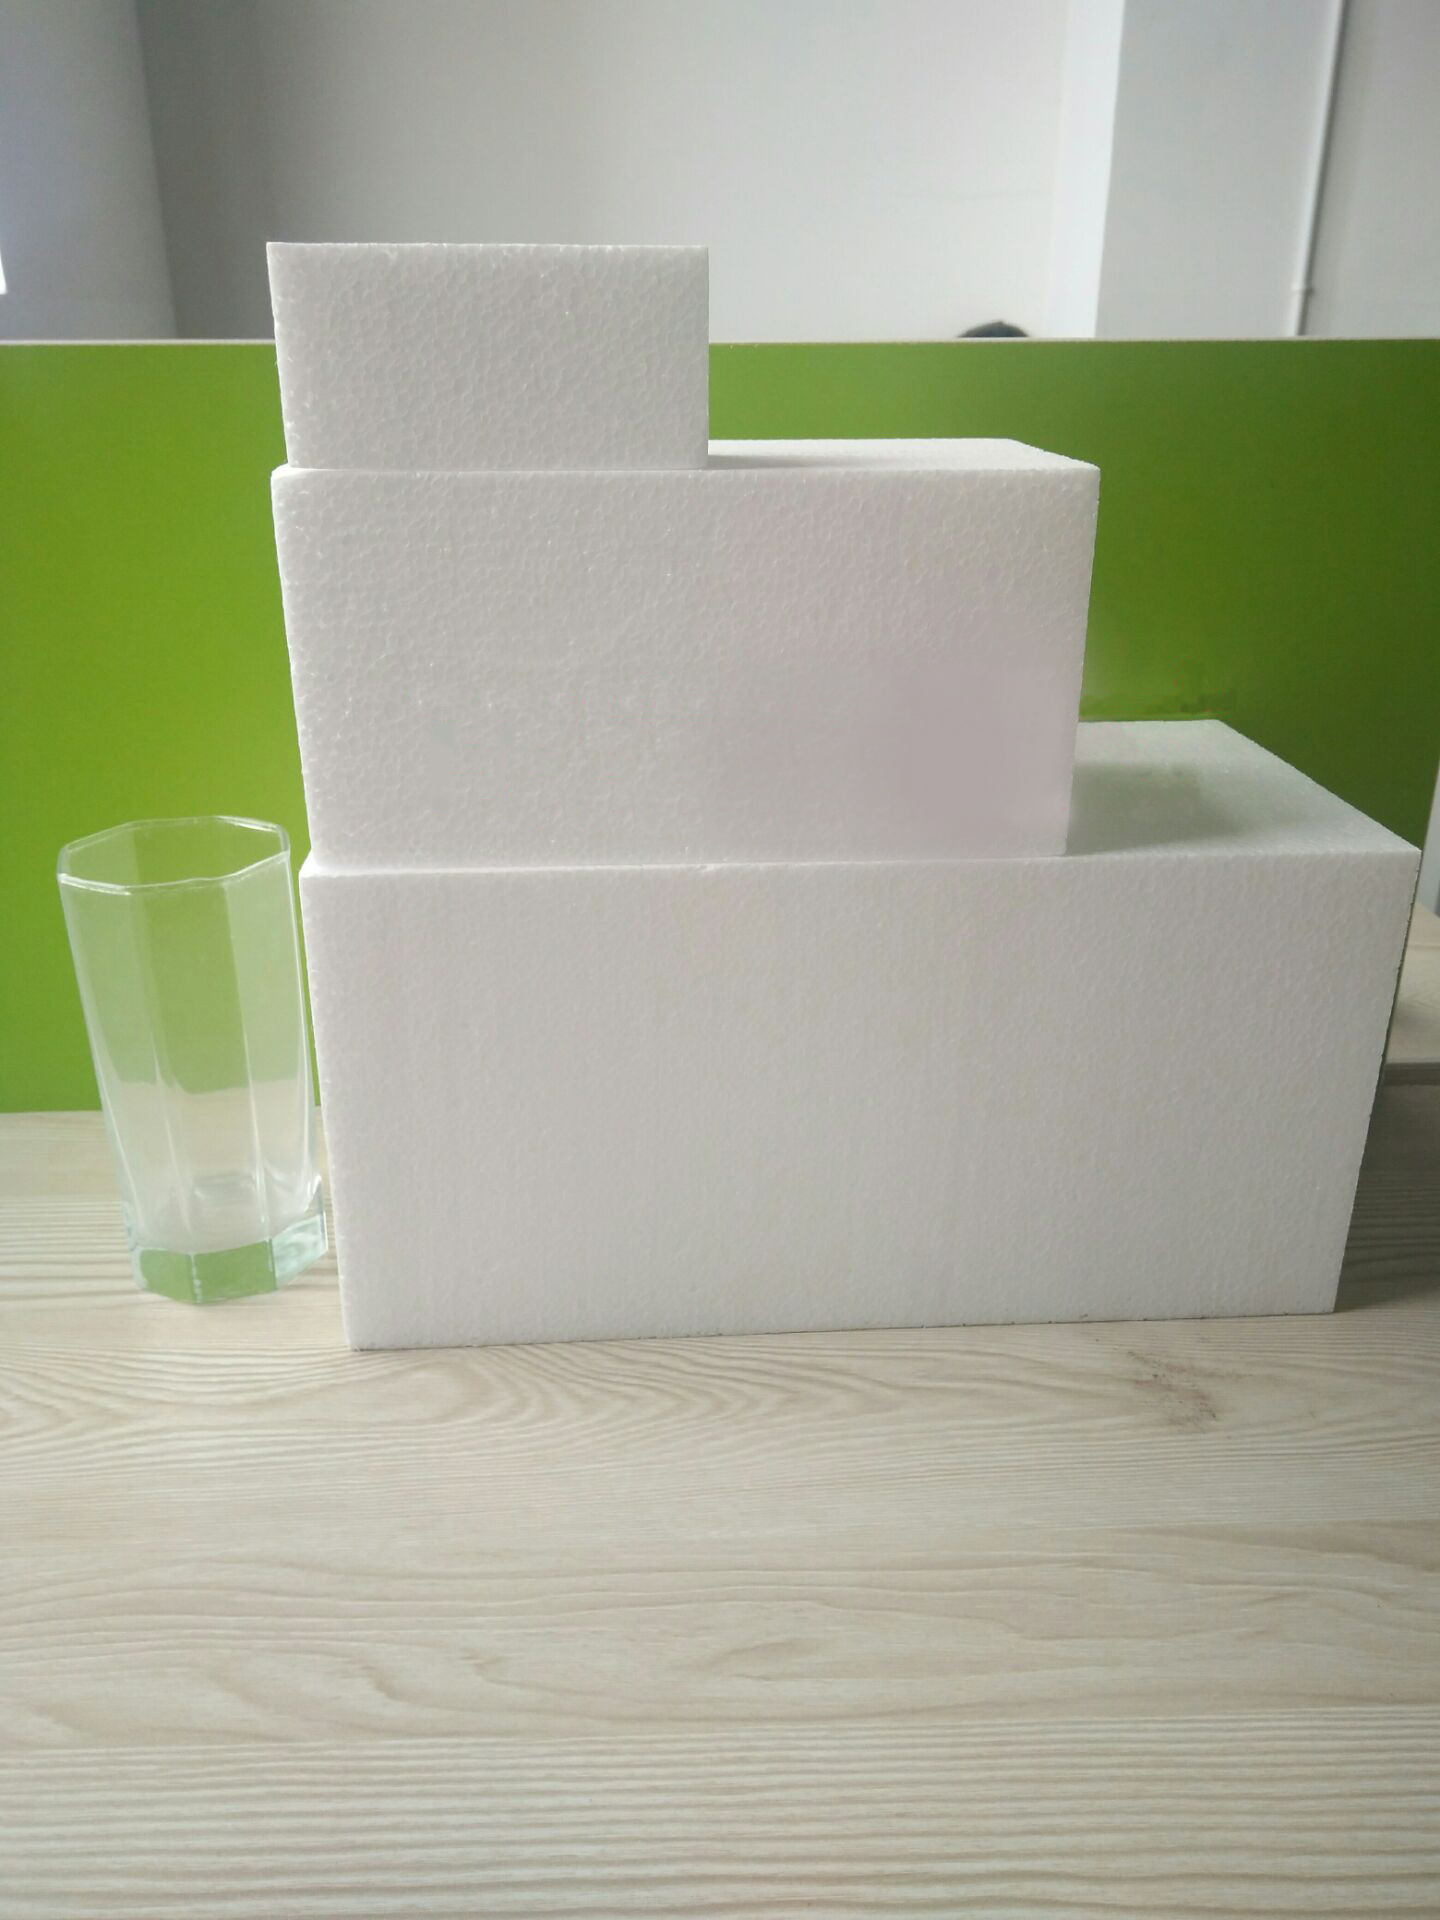 Polystyrene Styrofoam Foam Cuboid Educational Tools /toys Children/kids DIY Handmade Materials Many Sizes